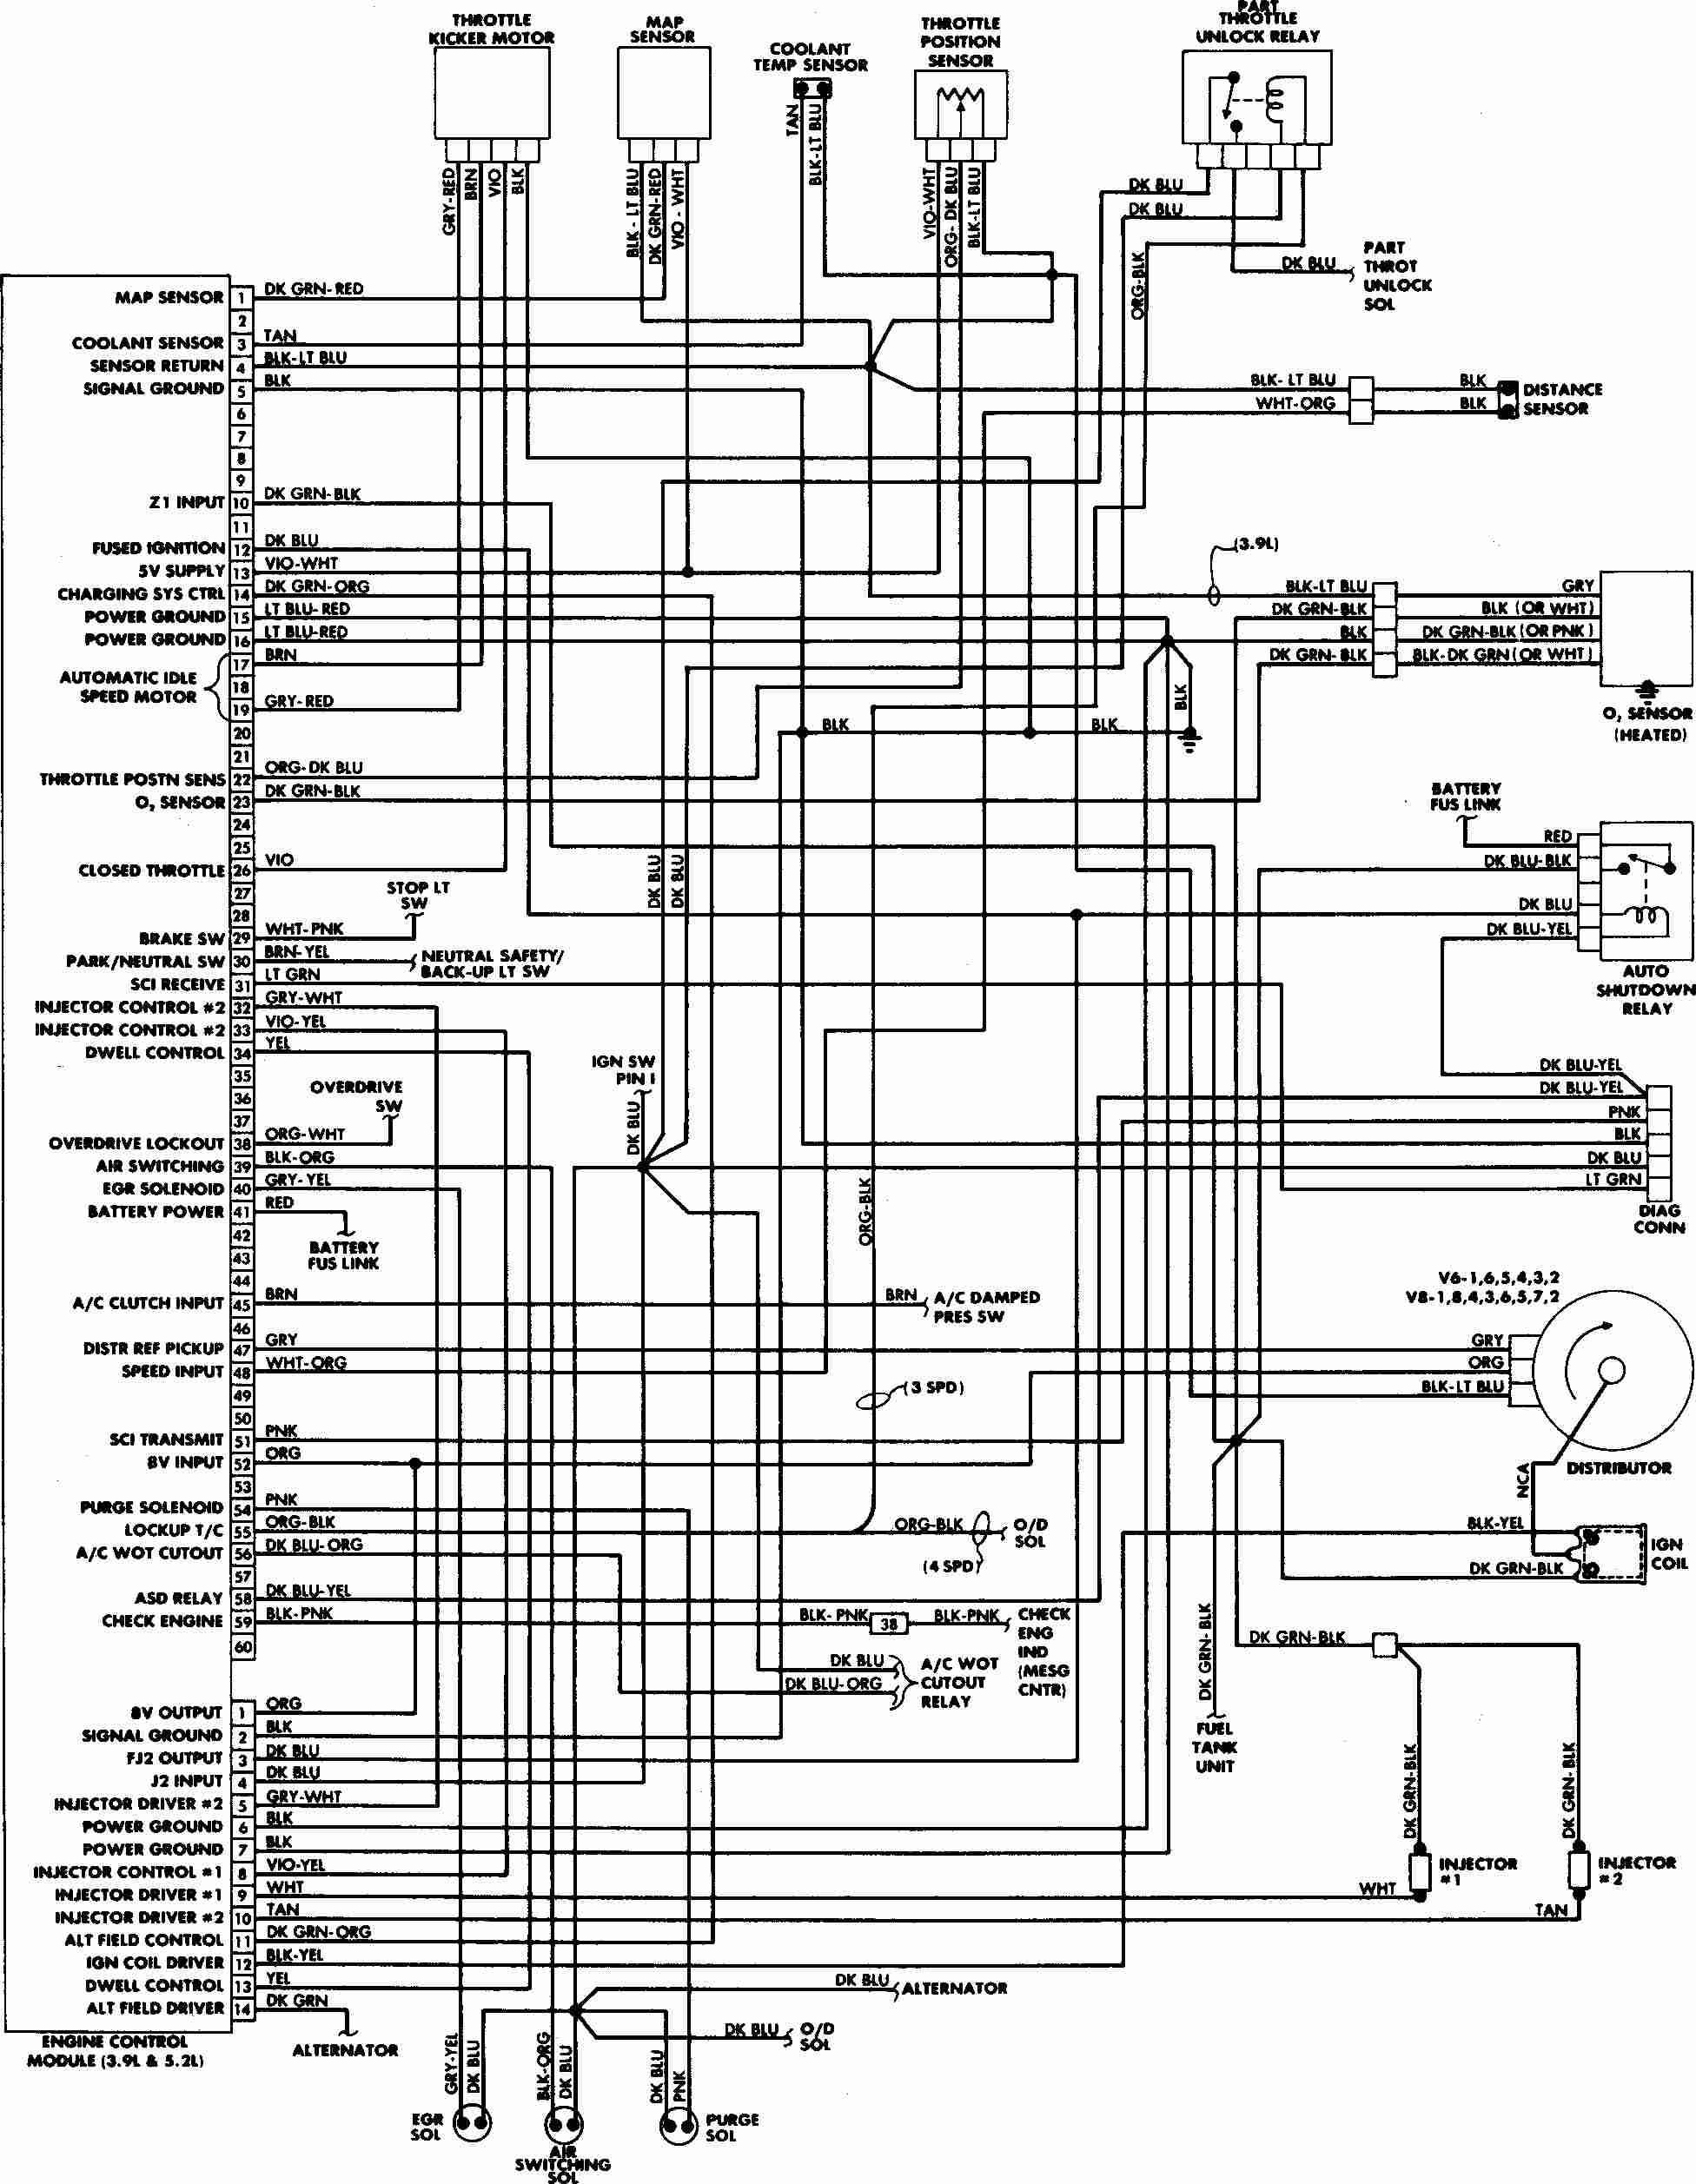 2003 Dodge Ram 2500 Tail Light Wiring Diagram